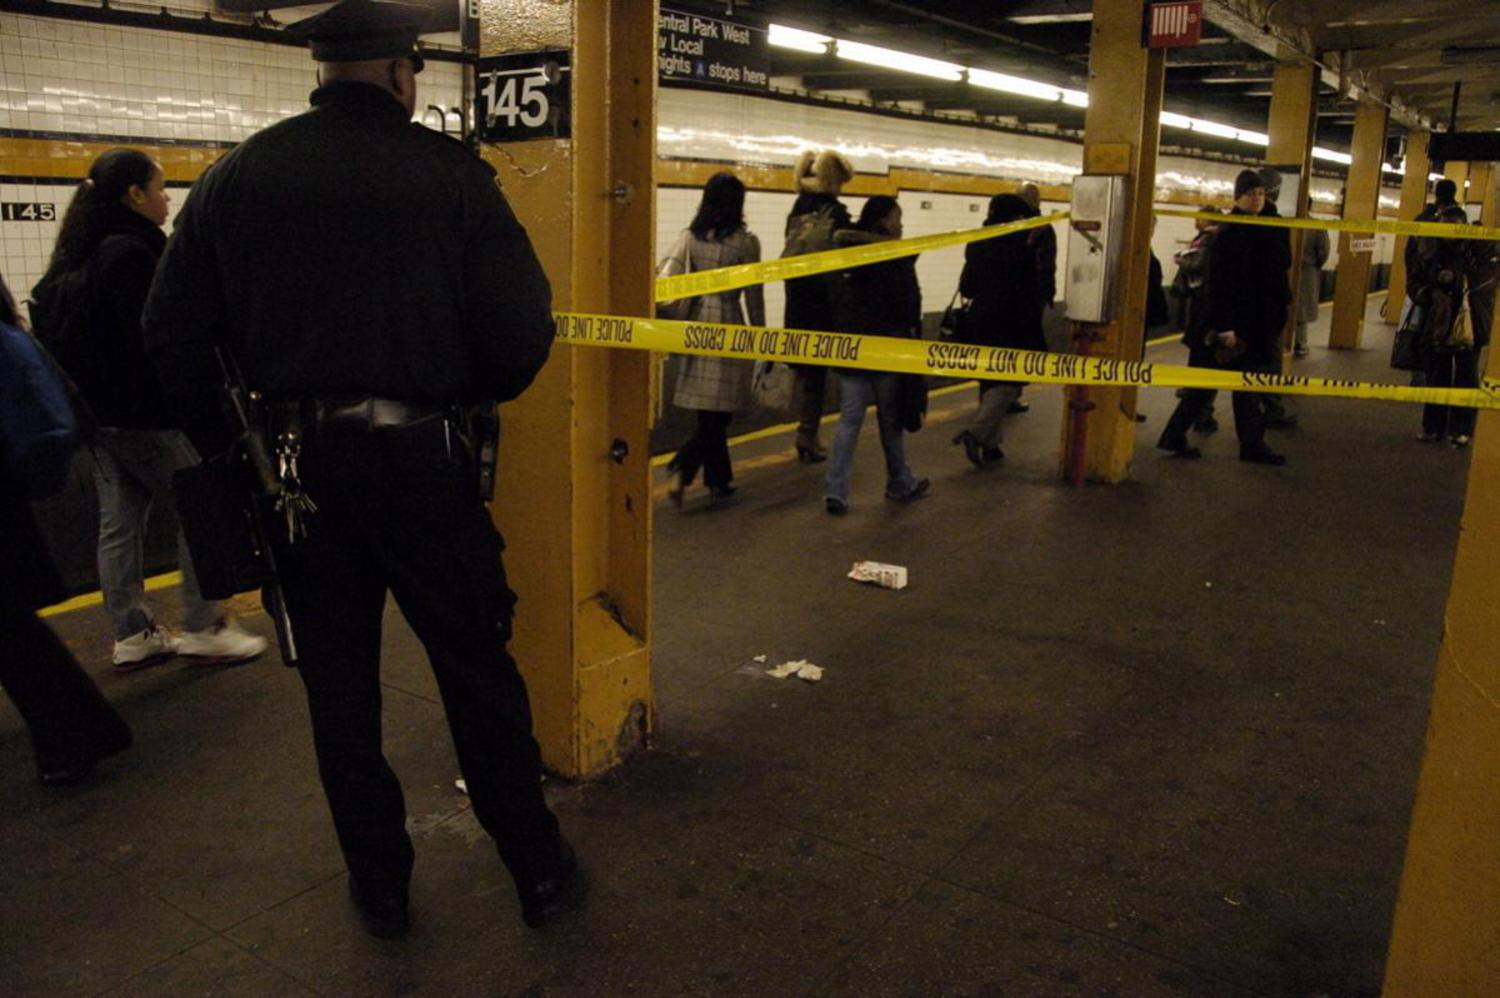 2000's: A 14-year-old boy was reportedly on his way to school when he was stabbed at the subway station at West 145th St. and St. Nicholas Avenue in 2007. Police tape cordons off the scene, pictured here.